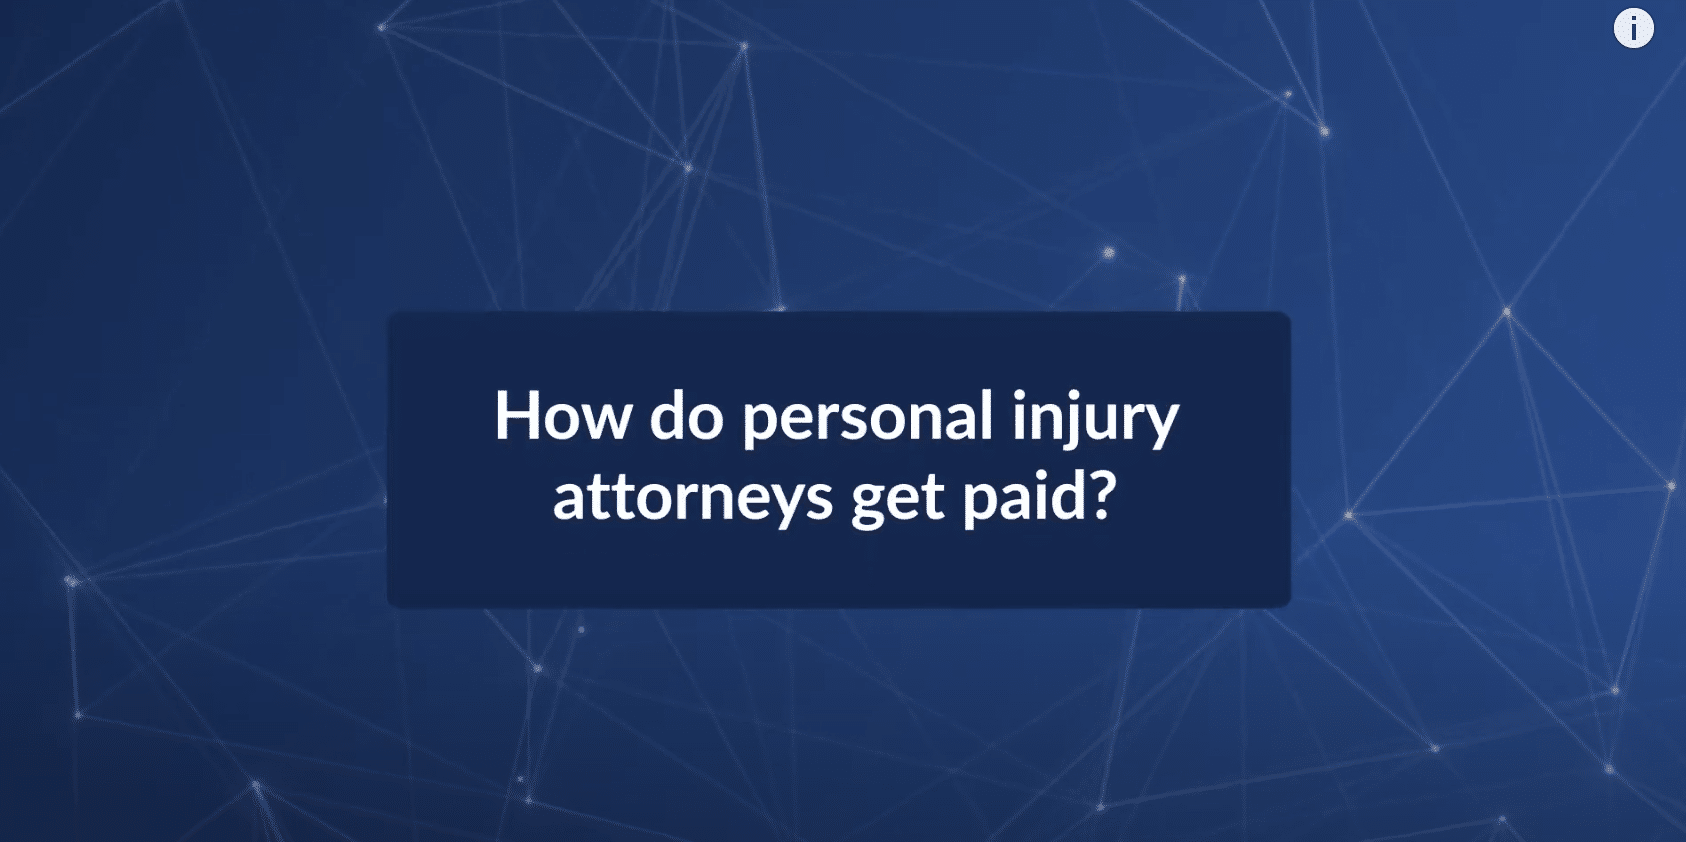 How Do Personal Injury Attorneys Get Paid?